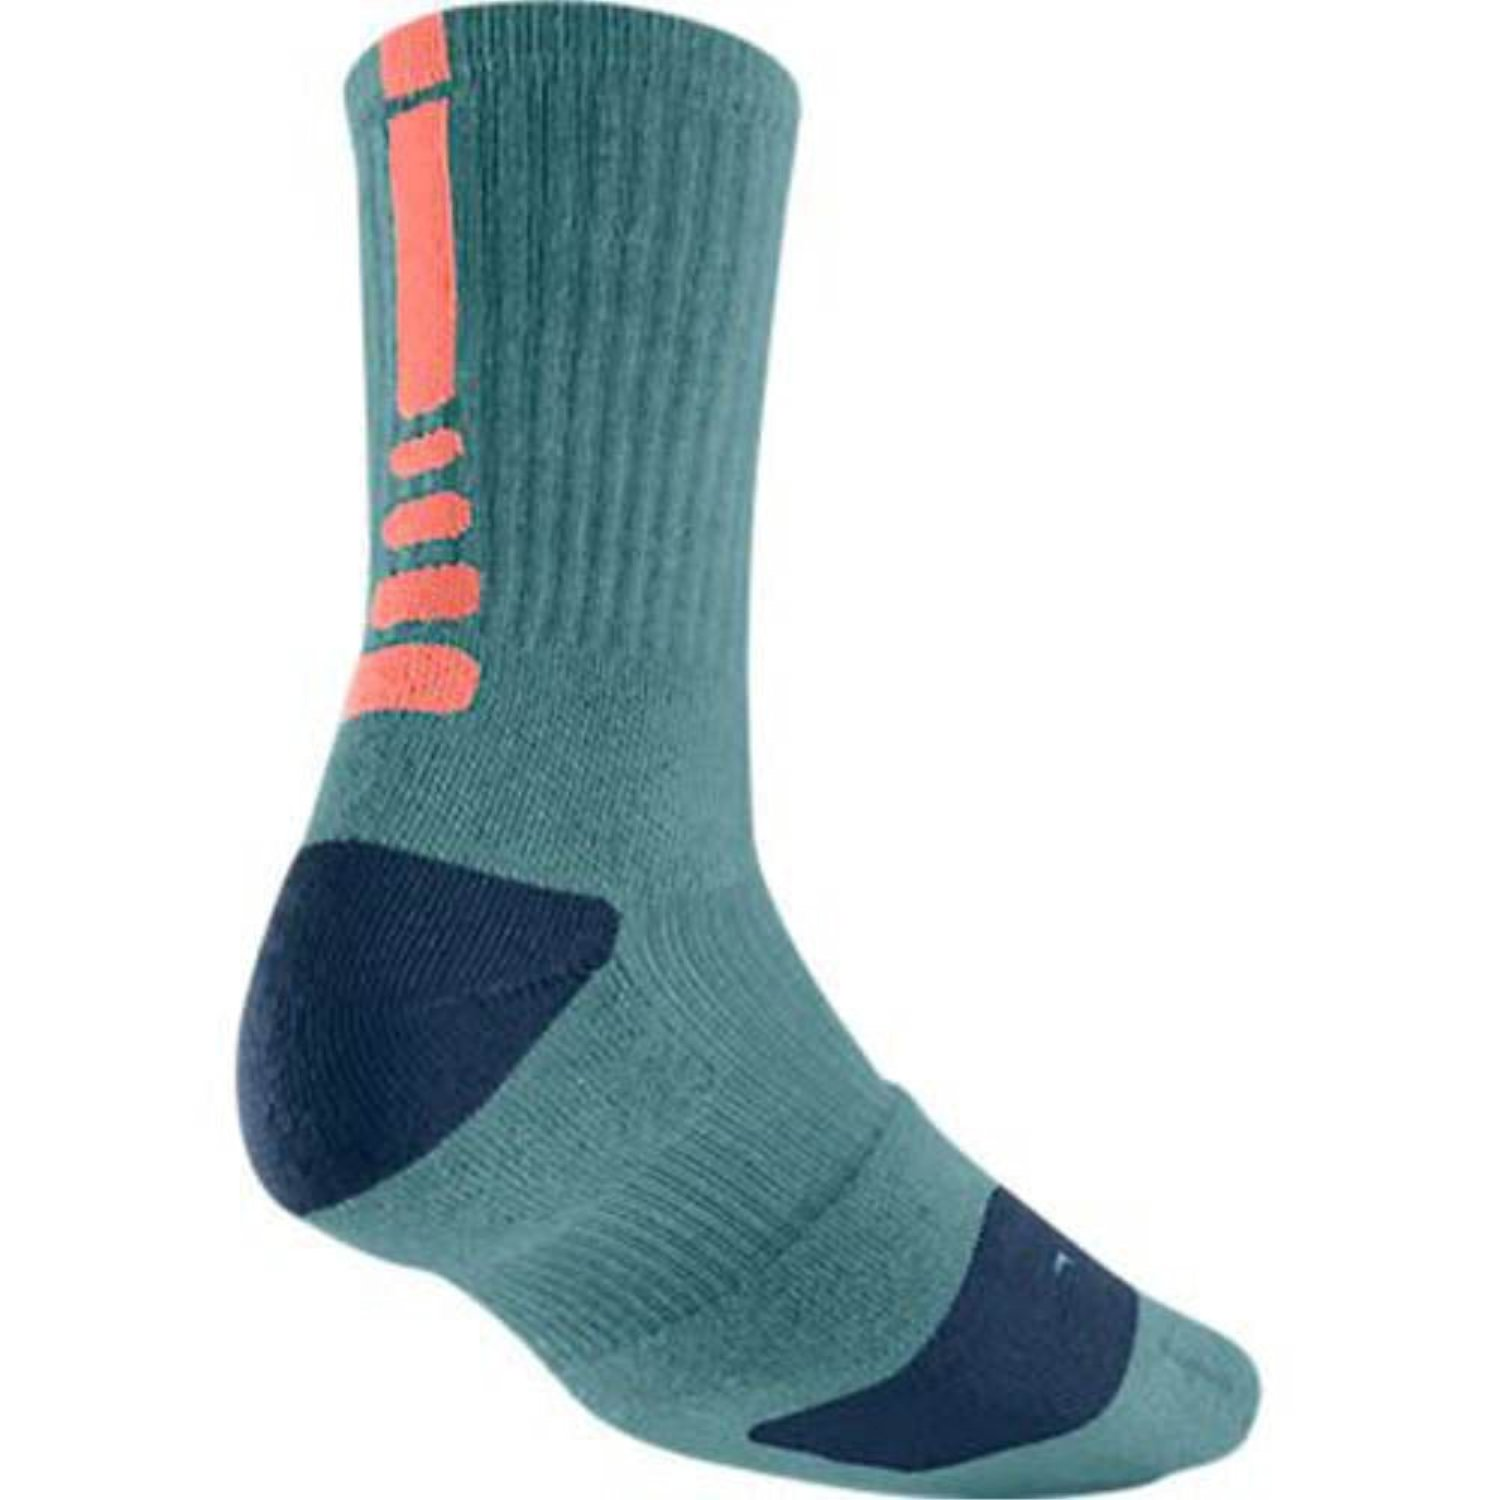 c6c27435a24d Get Quotations · Nike Elite Women s Lebron Basketball Crew Socks Small  (Size 4-6) Teal